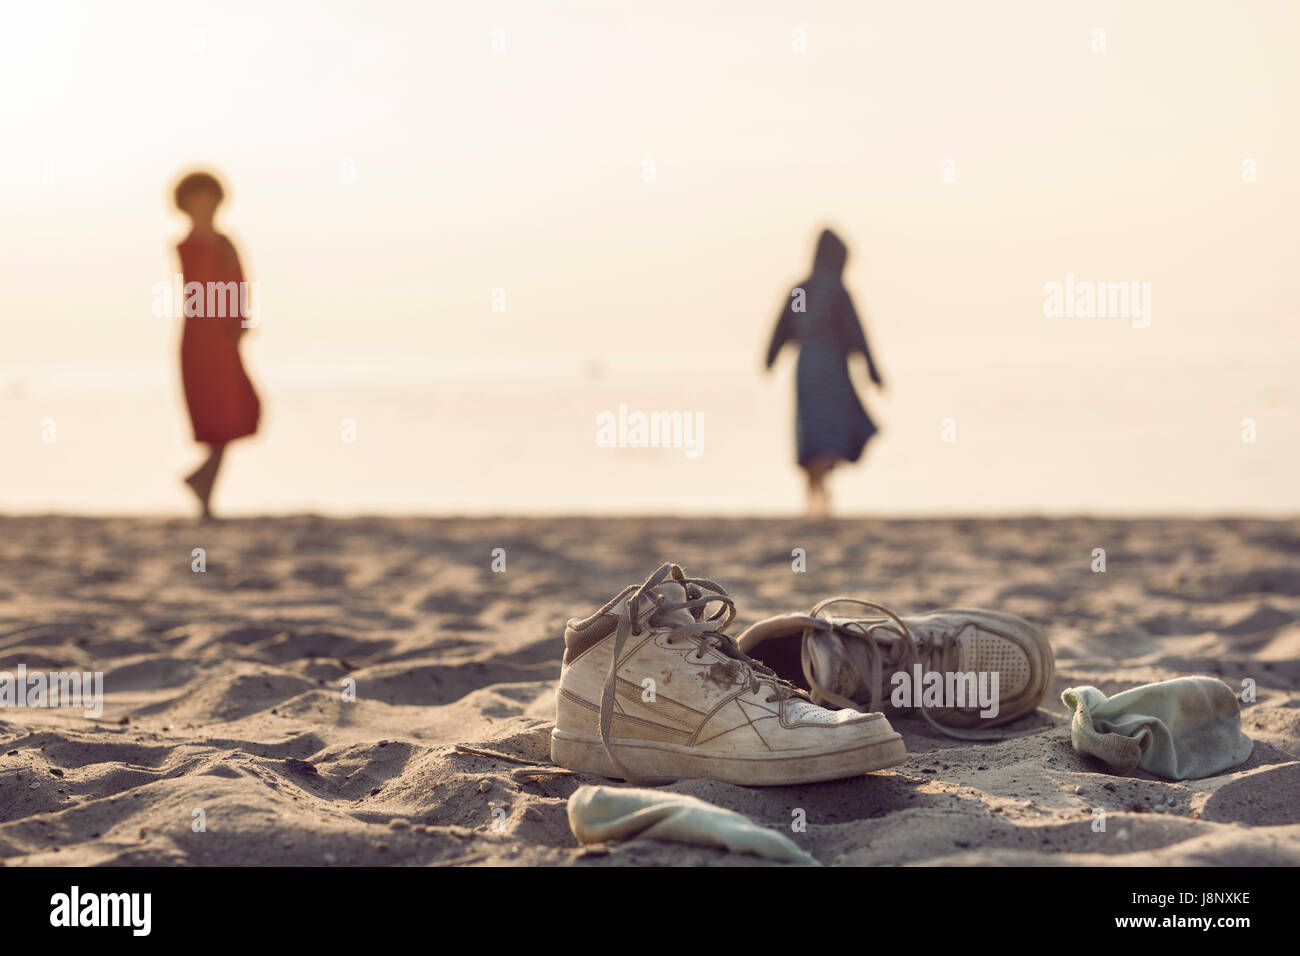 Two women standing on beach, shoes in foreground Stock Photo